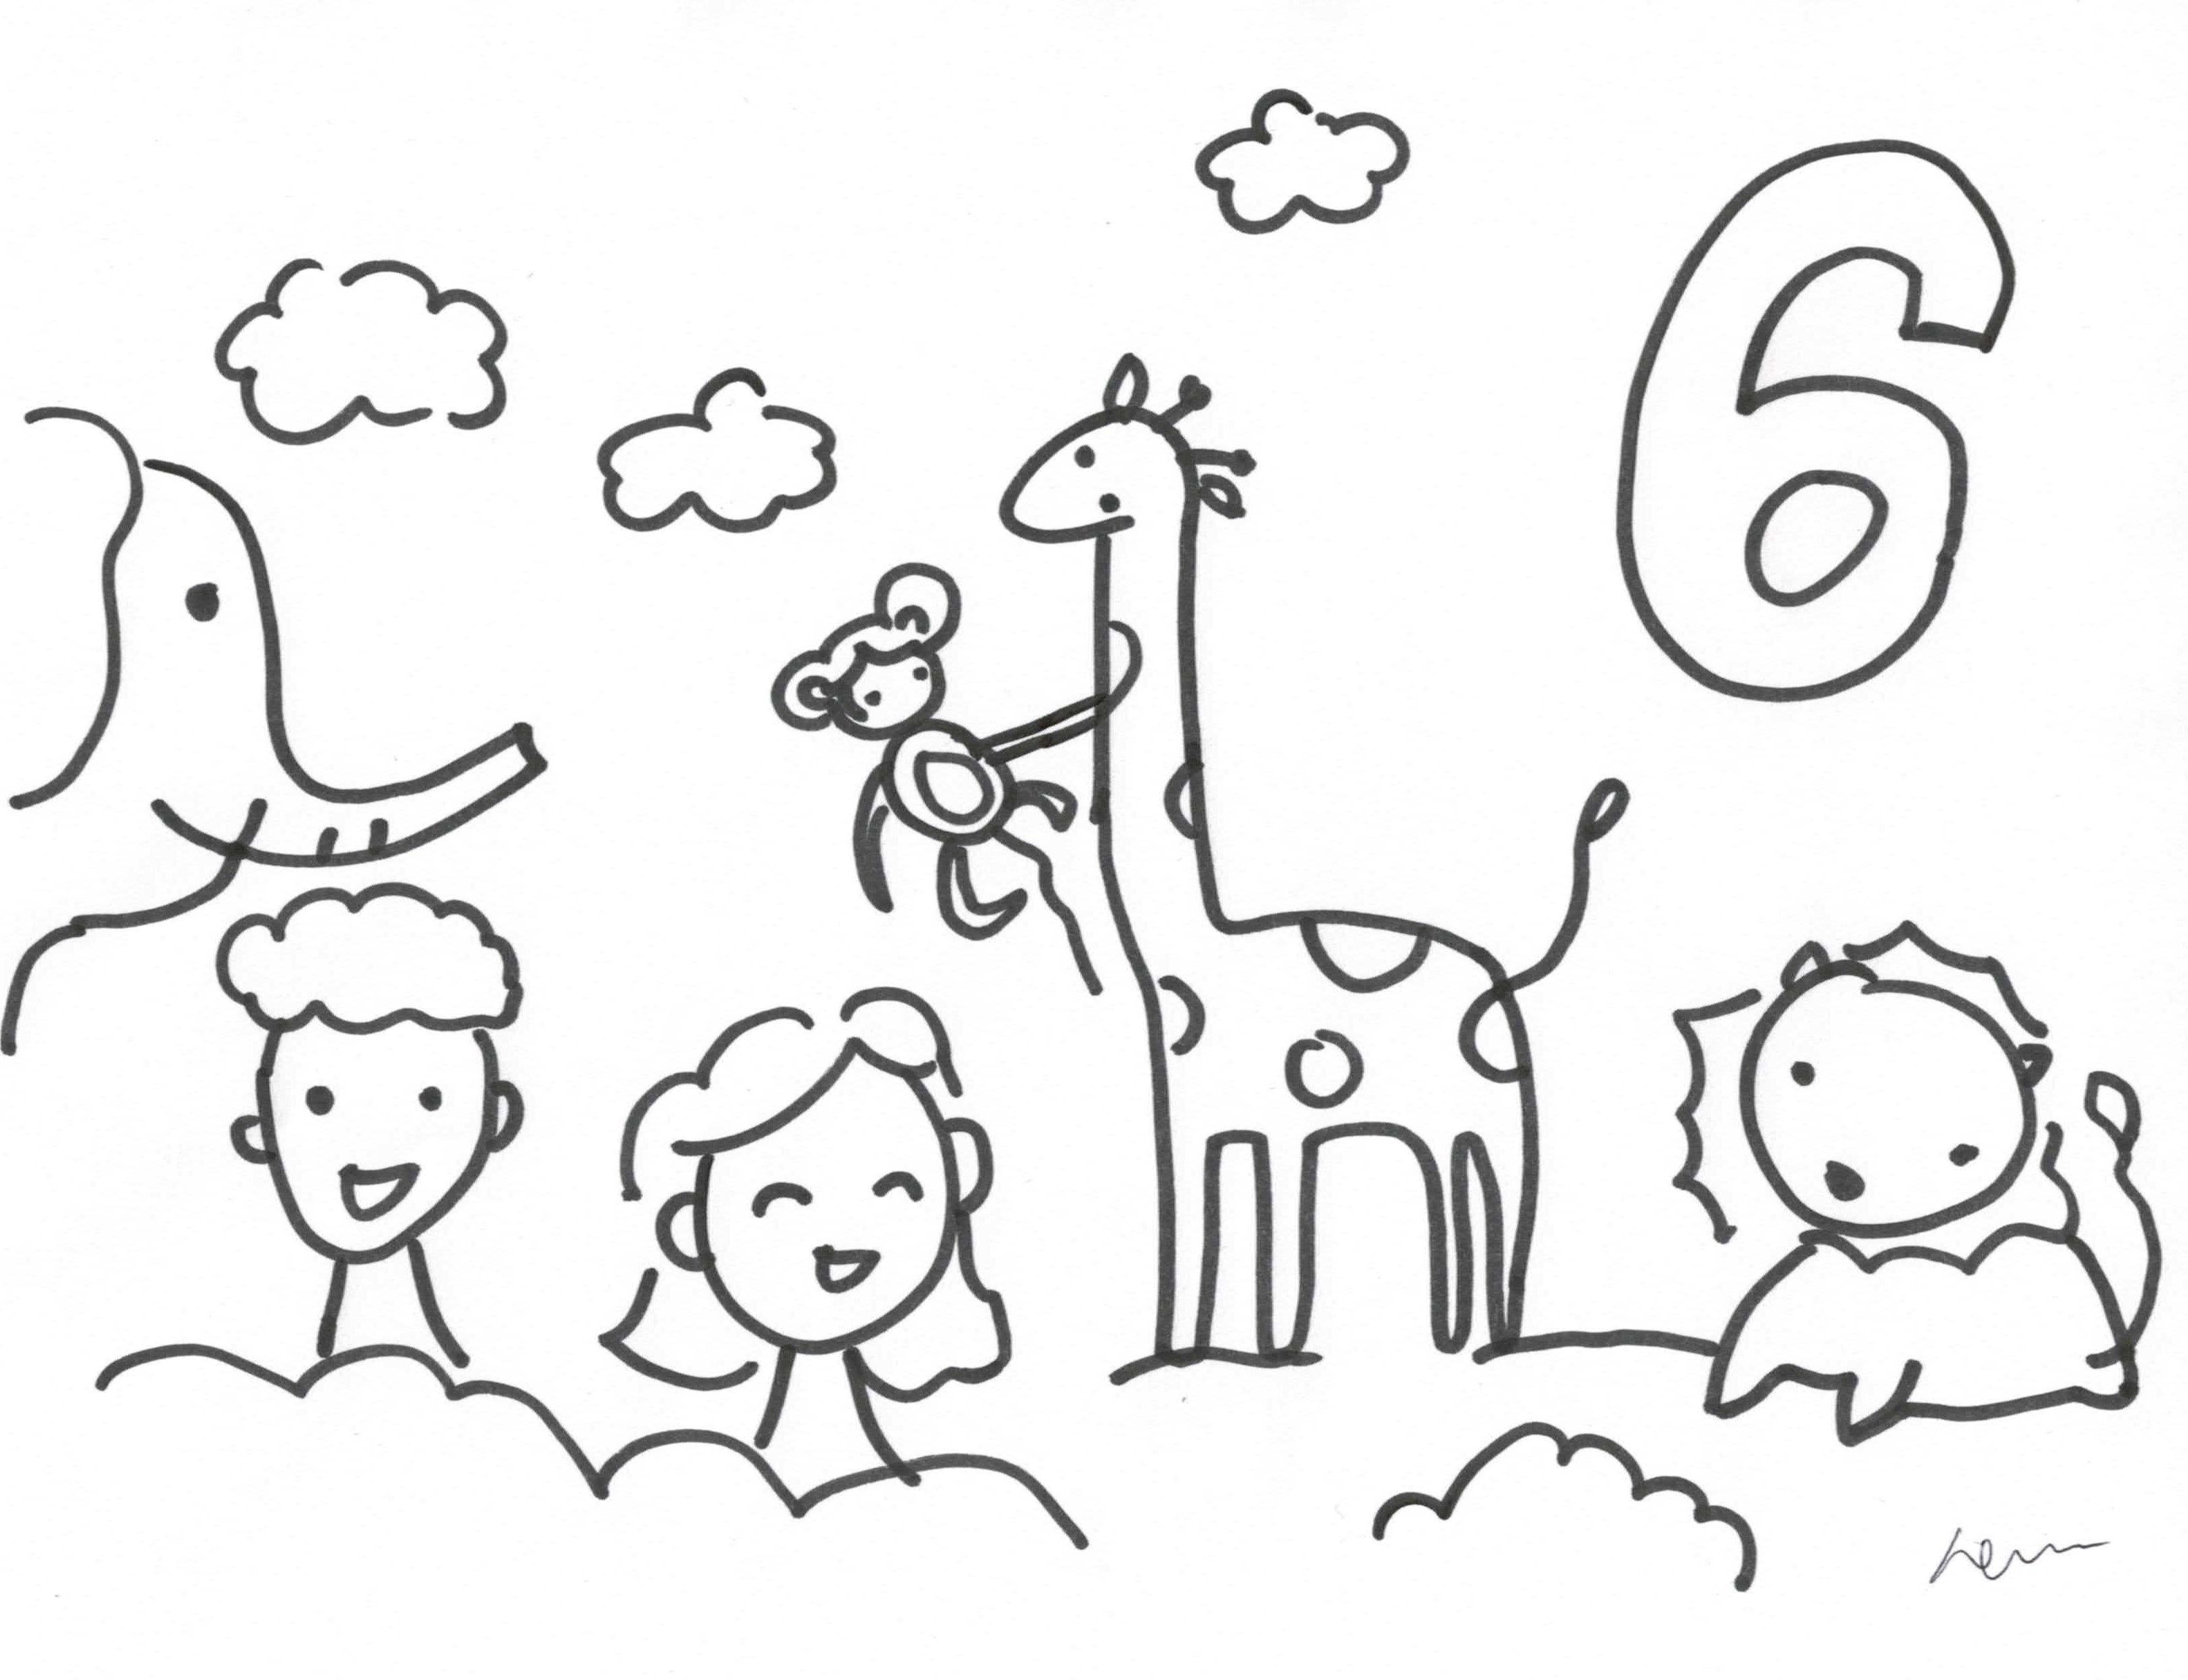 coloring sheet 7 days of creation coloring pages free 7 days of creation coloring pages coloring home sheet creation 7 days coloring of coloring free pages